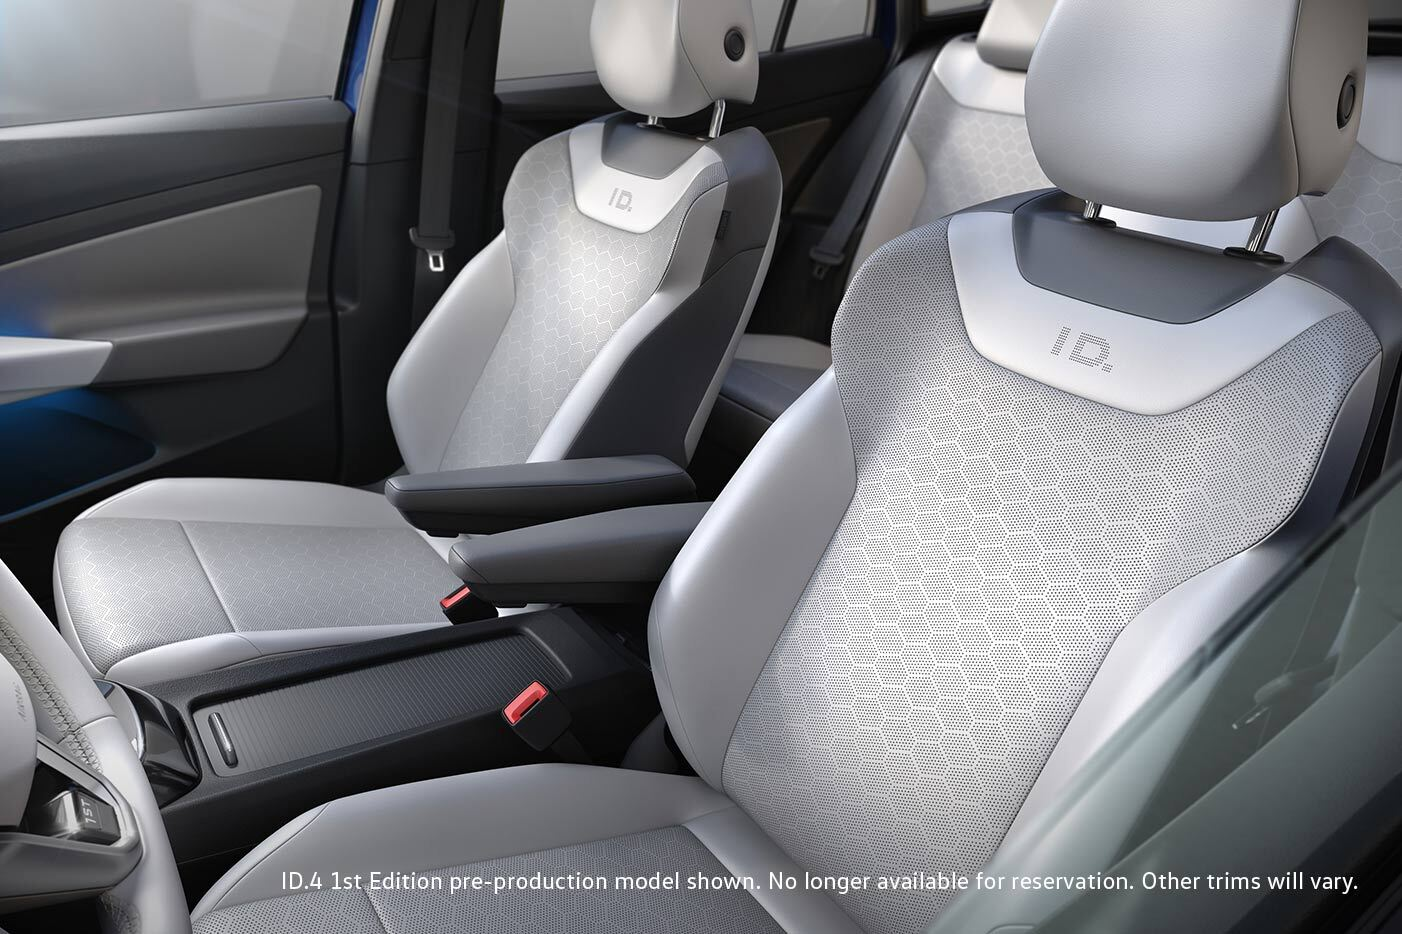 Front seats of Volkswagen ID.4